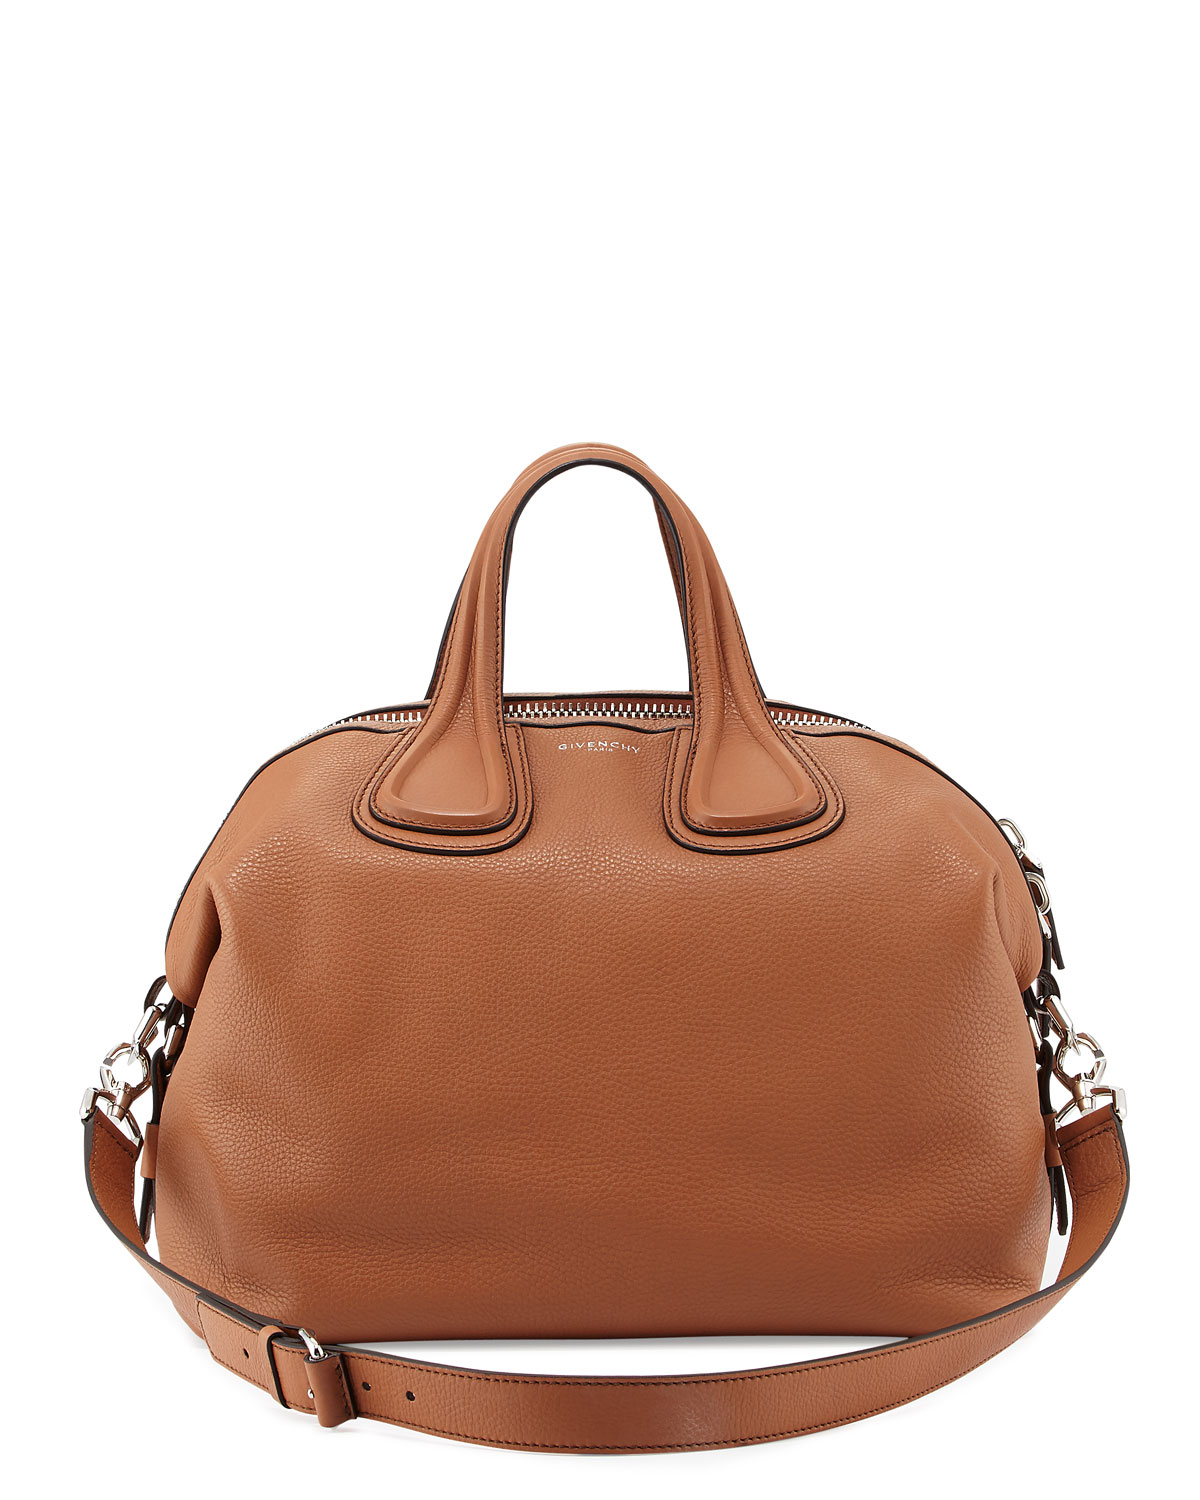 a62736654f Givenchy Nightingale Medium Waxy Leather Satchel Bag